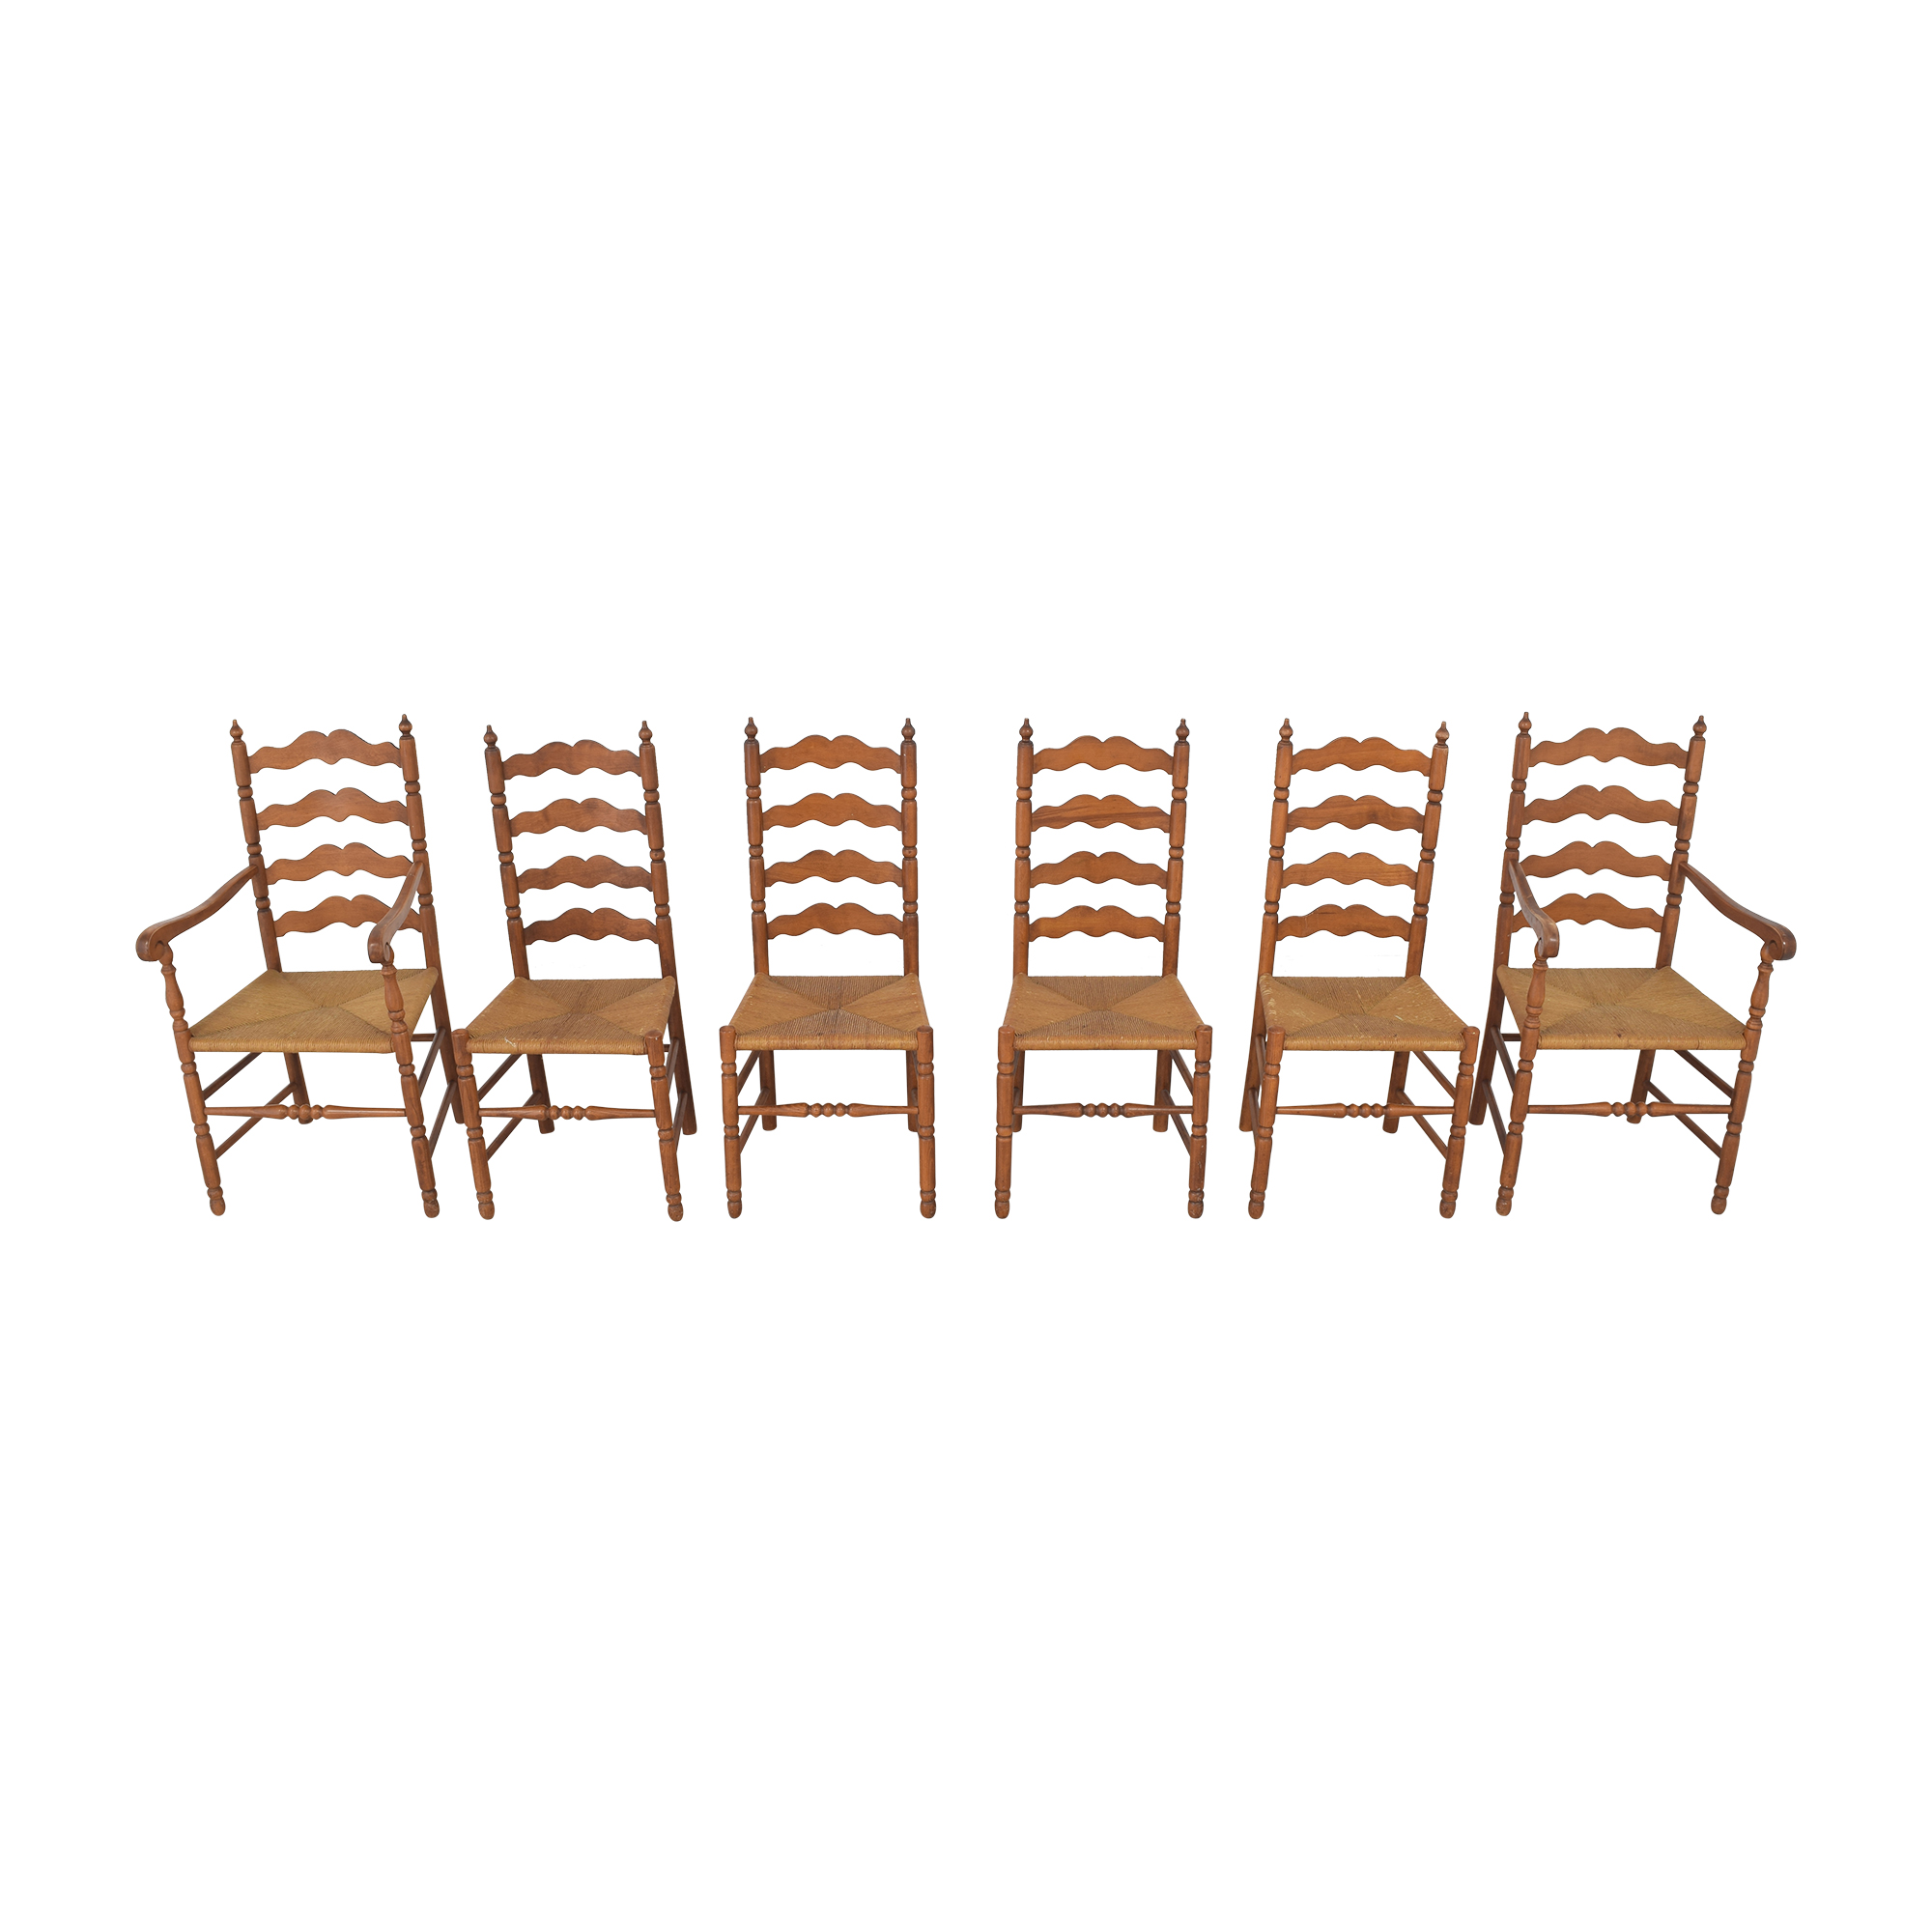 buy Tell City Ladder Back Dining Chairs Tell City